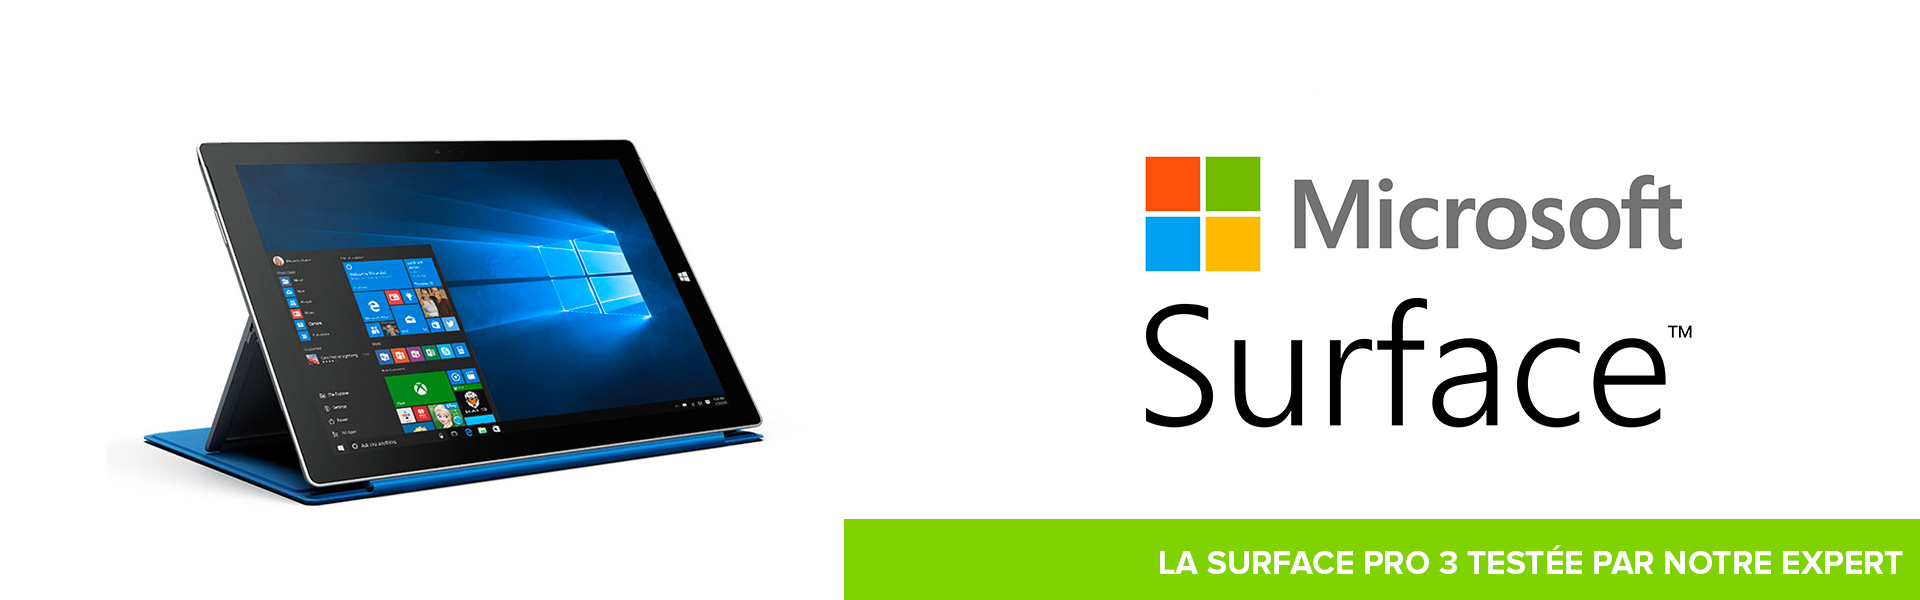 Surface pro 3 - banniere - Test du mois  Trade discount